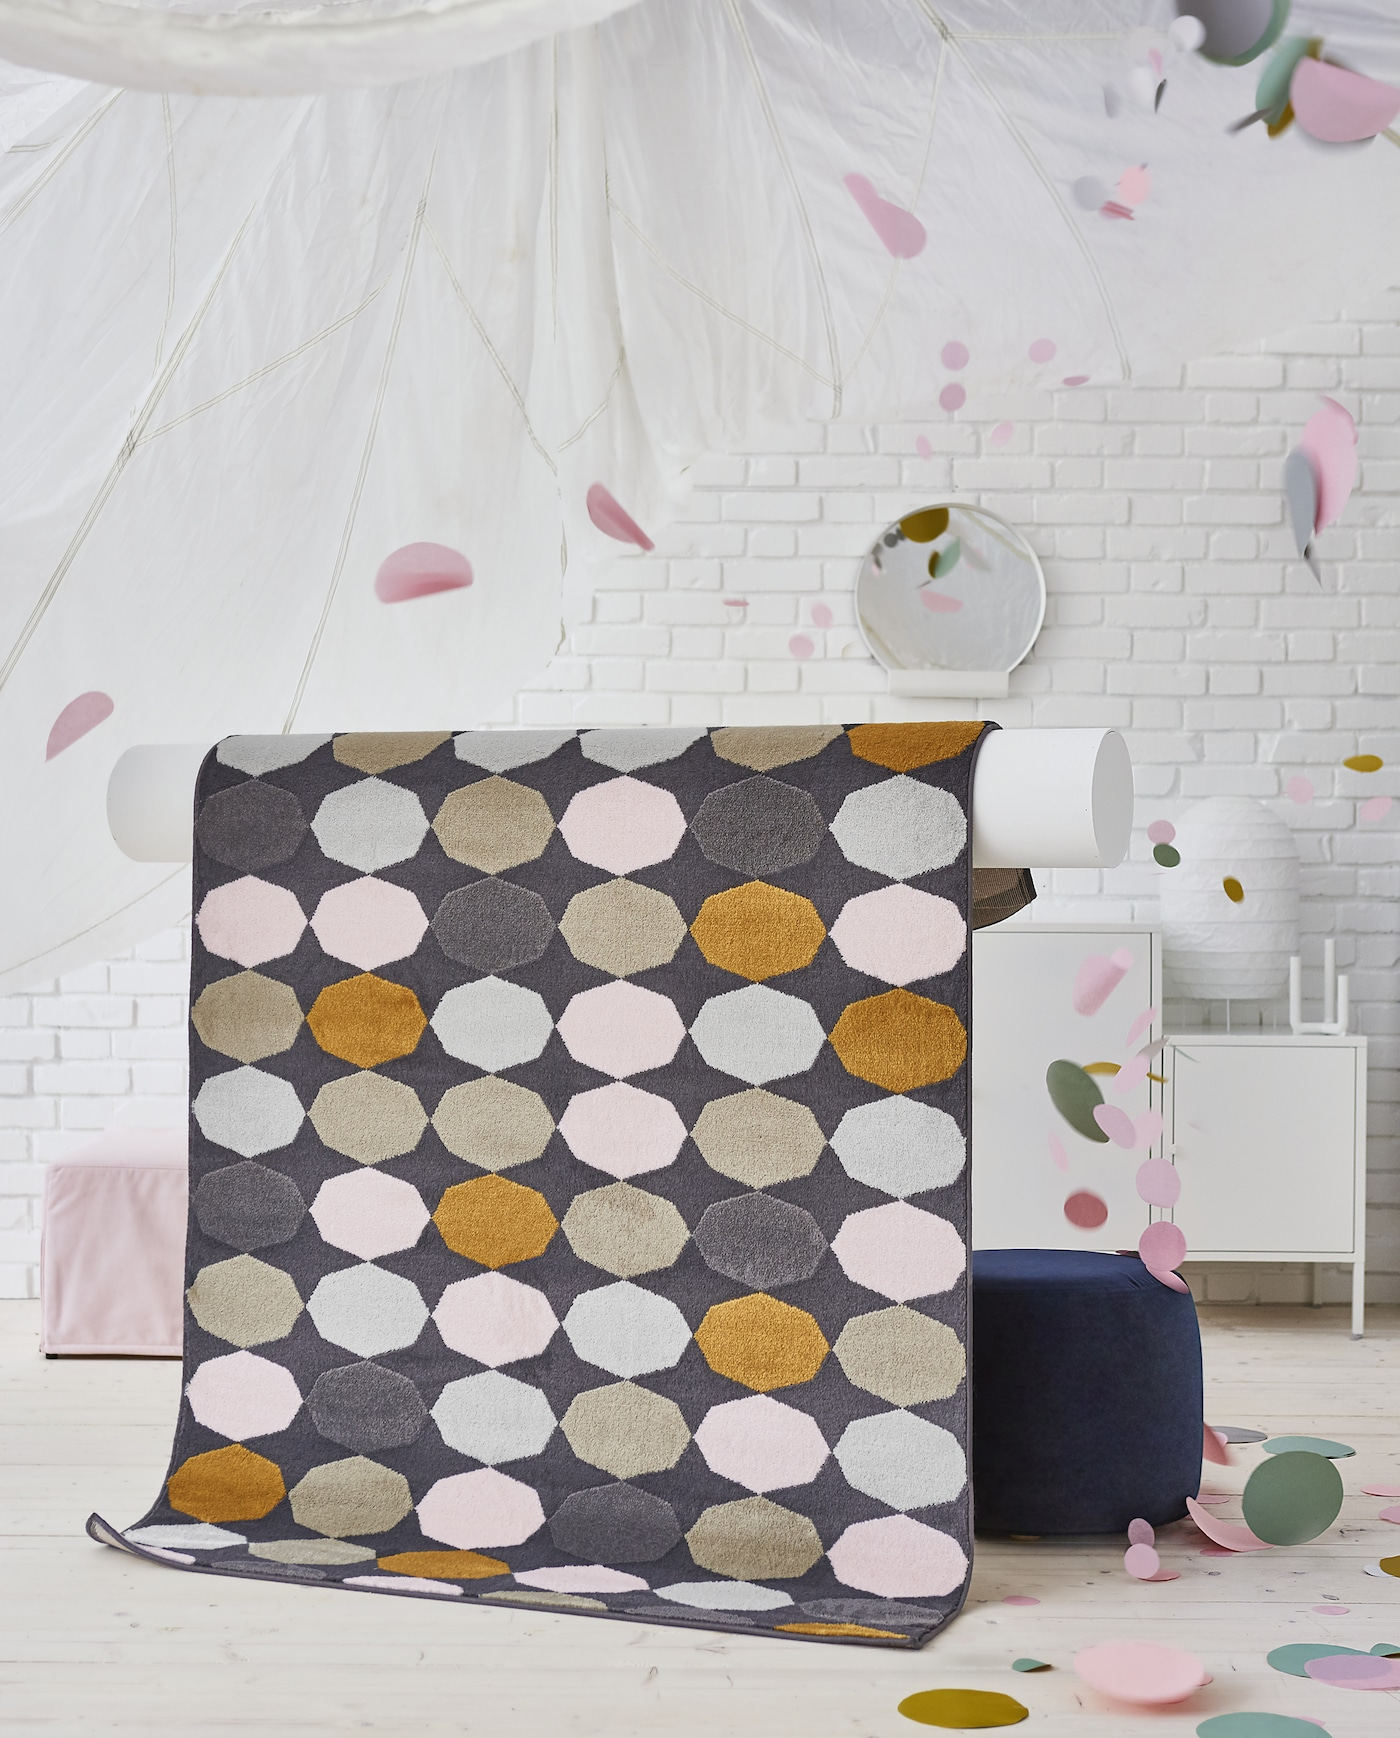 The affordable IKEA TORRILD rug has a playful, multicoloured pattern that adds personality to any room.